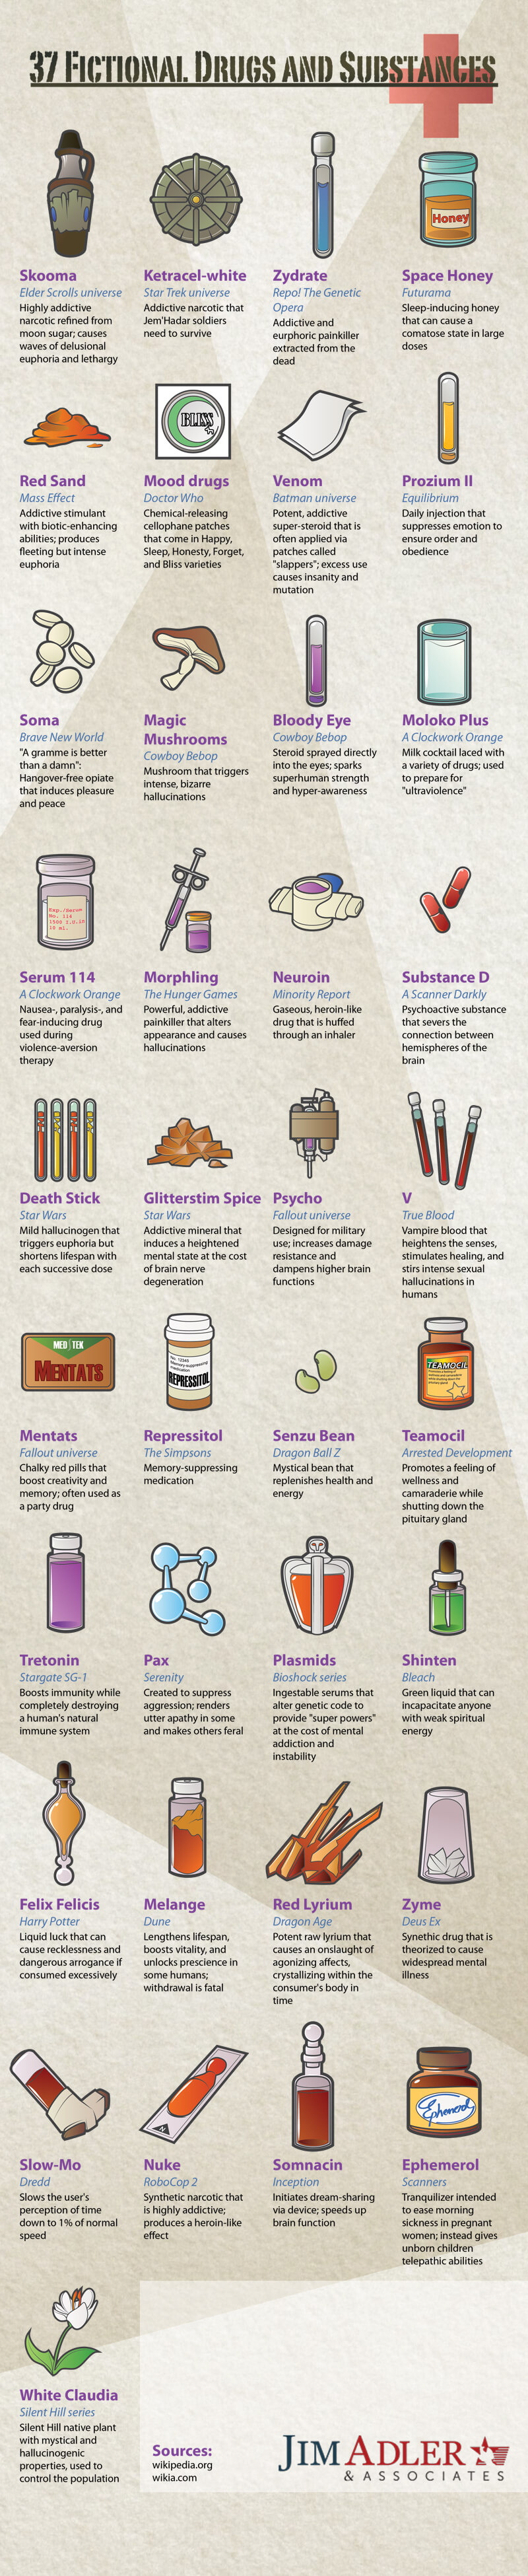 37 Fictional Drugs and Substances